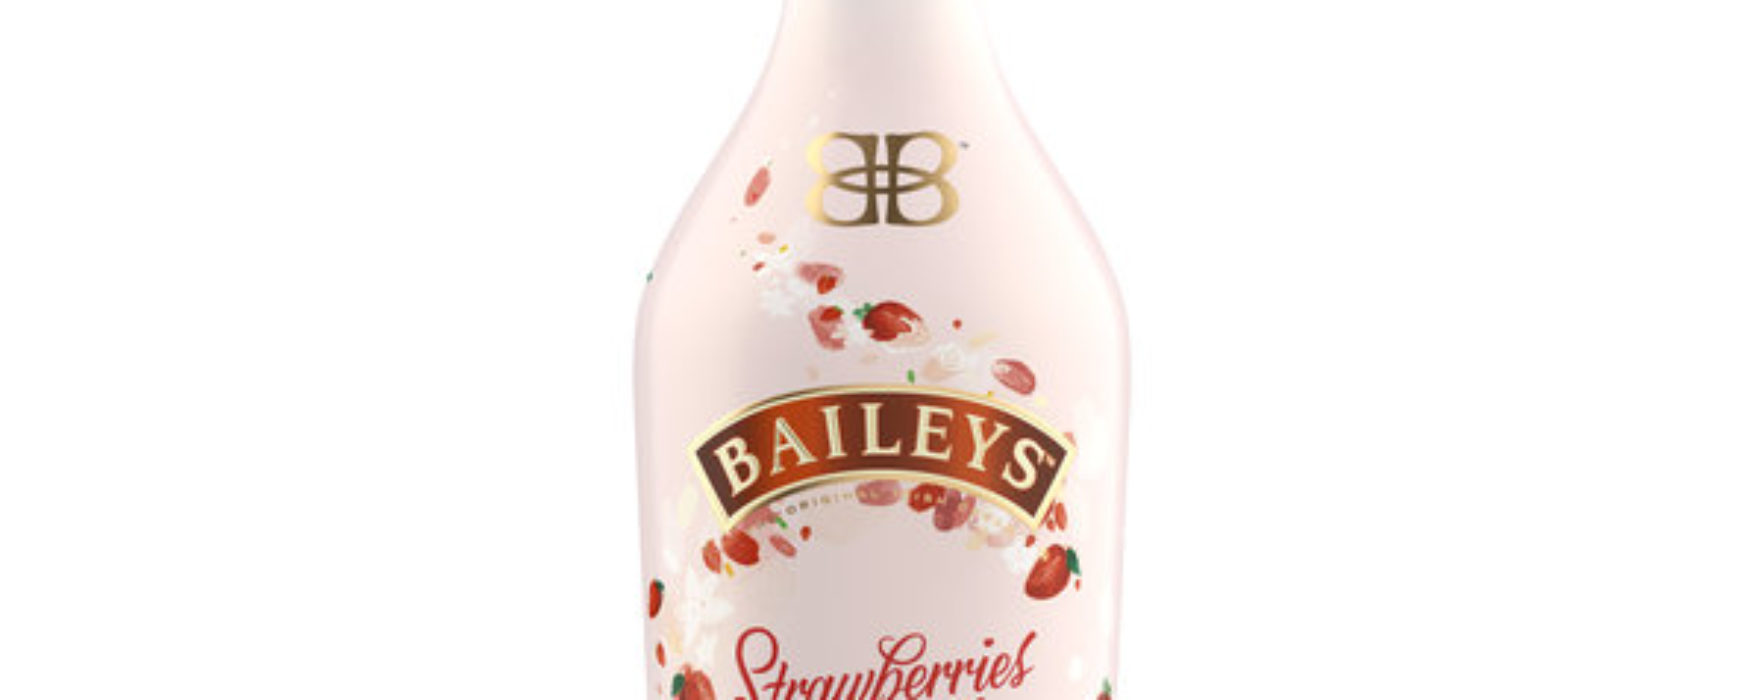 Baileys Strawberries & Cream arrives in UK just in time for Wimbledon